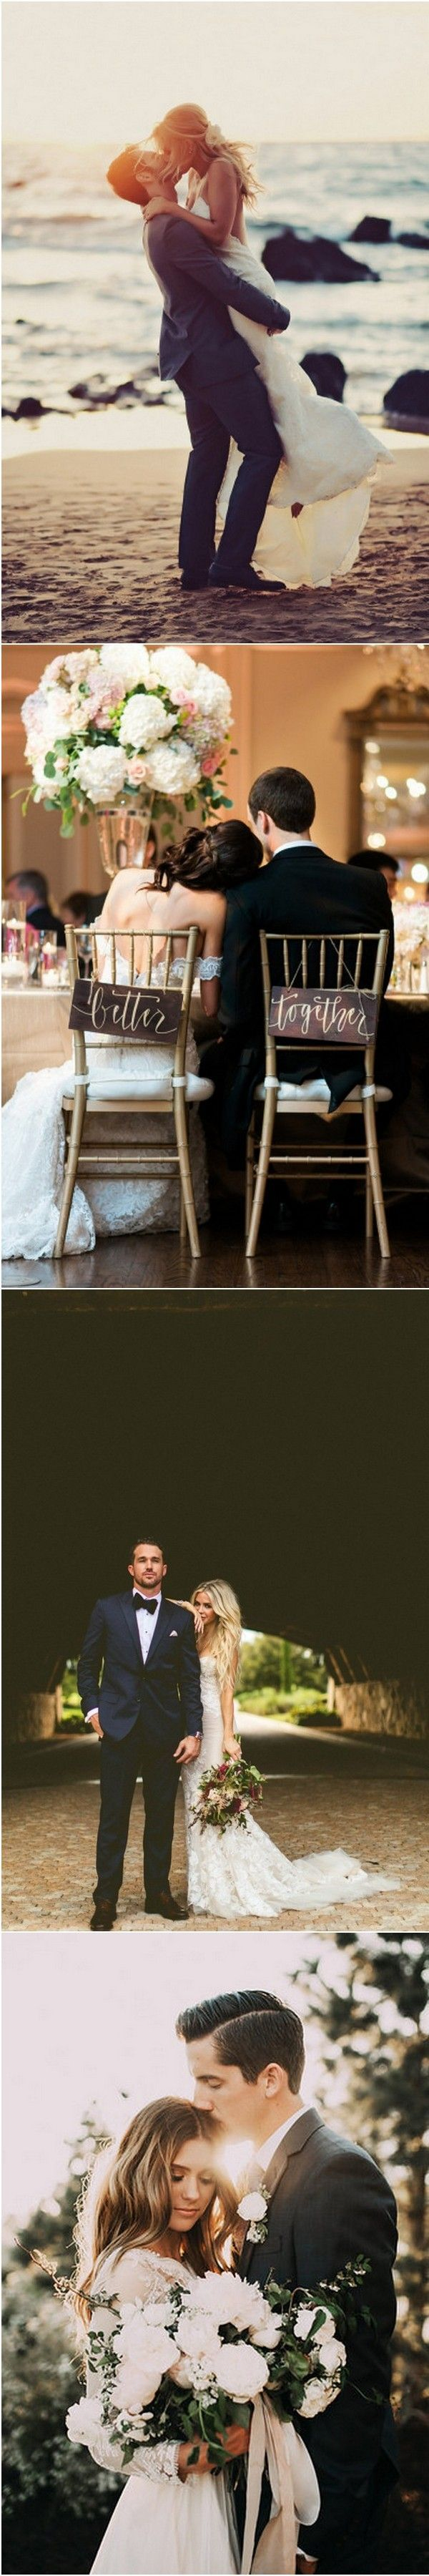 best bride and groom wedding photo ideas